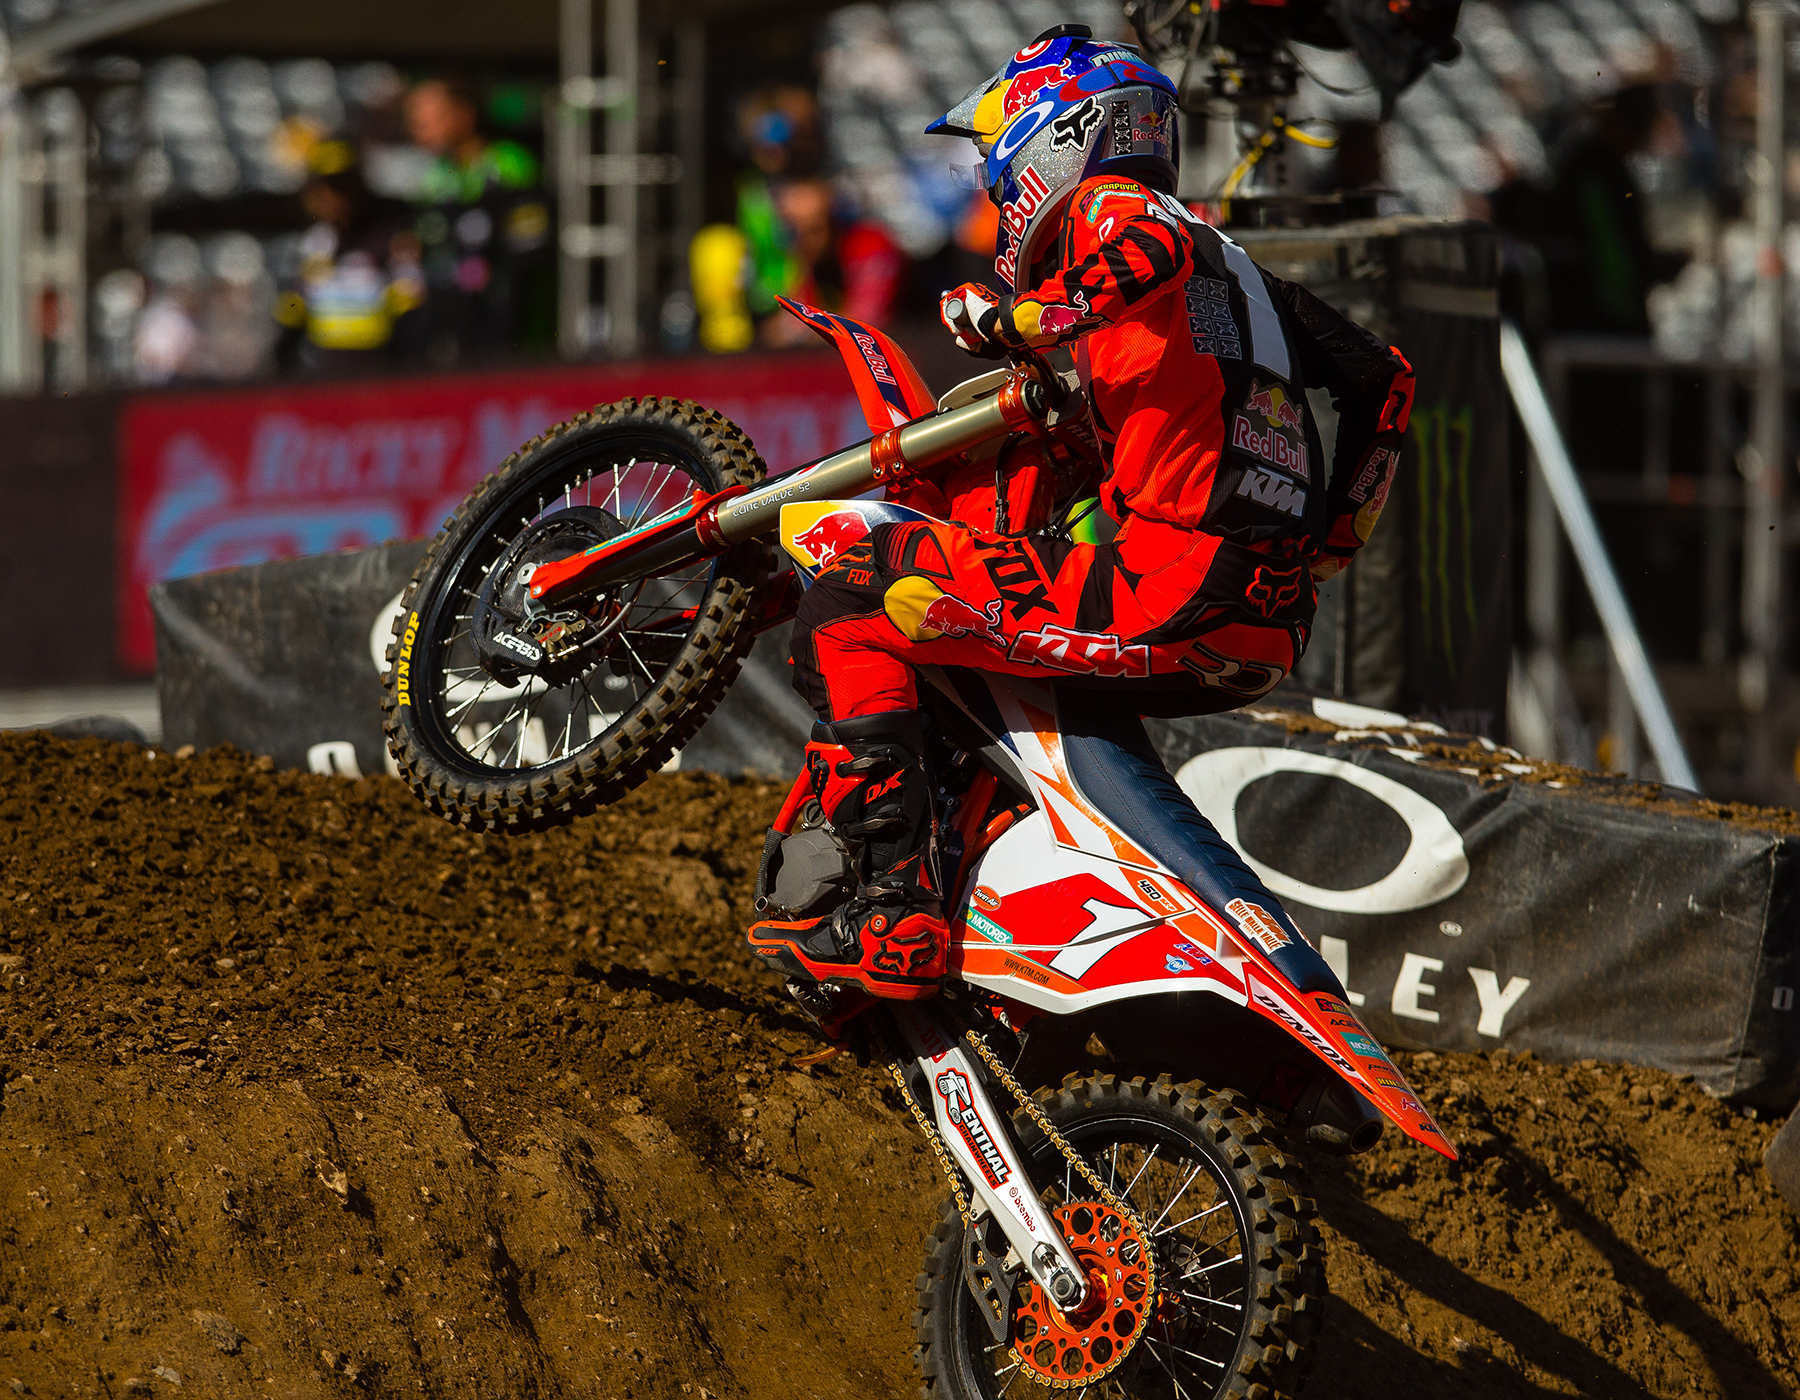 Ryan Dungey - 2016 Monster Energy AMA Supercross Series Champion